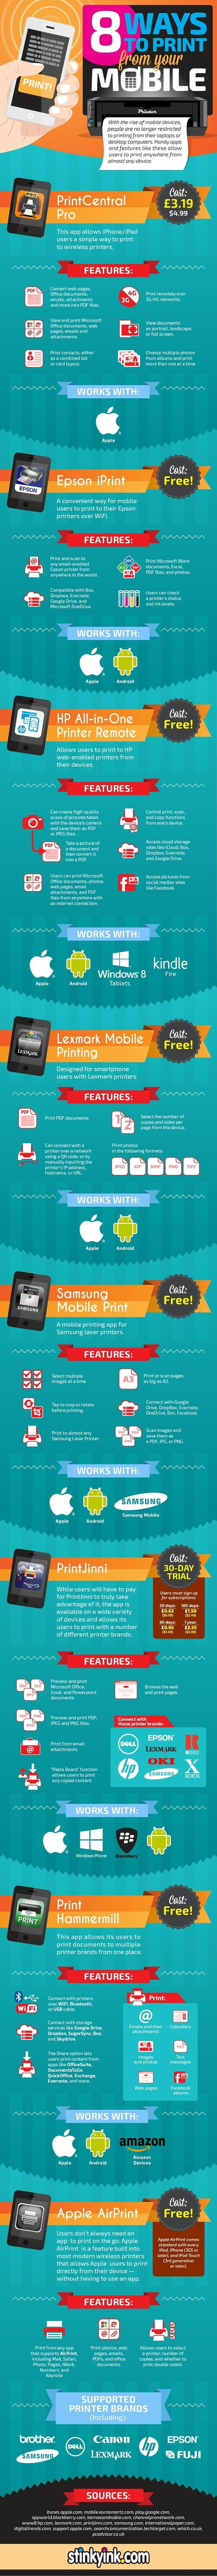 8 Ways To Print From Your Mobile | #Infographic | El Aula Virtual | Scoop.it